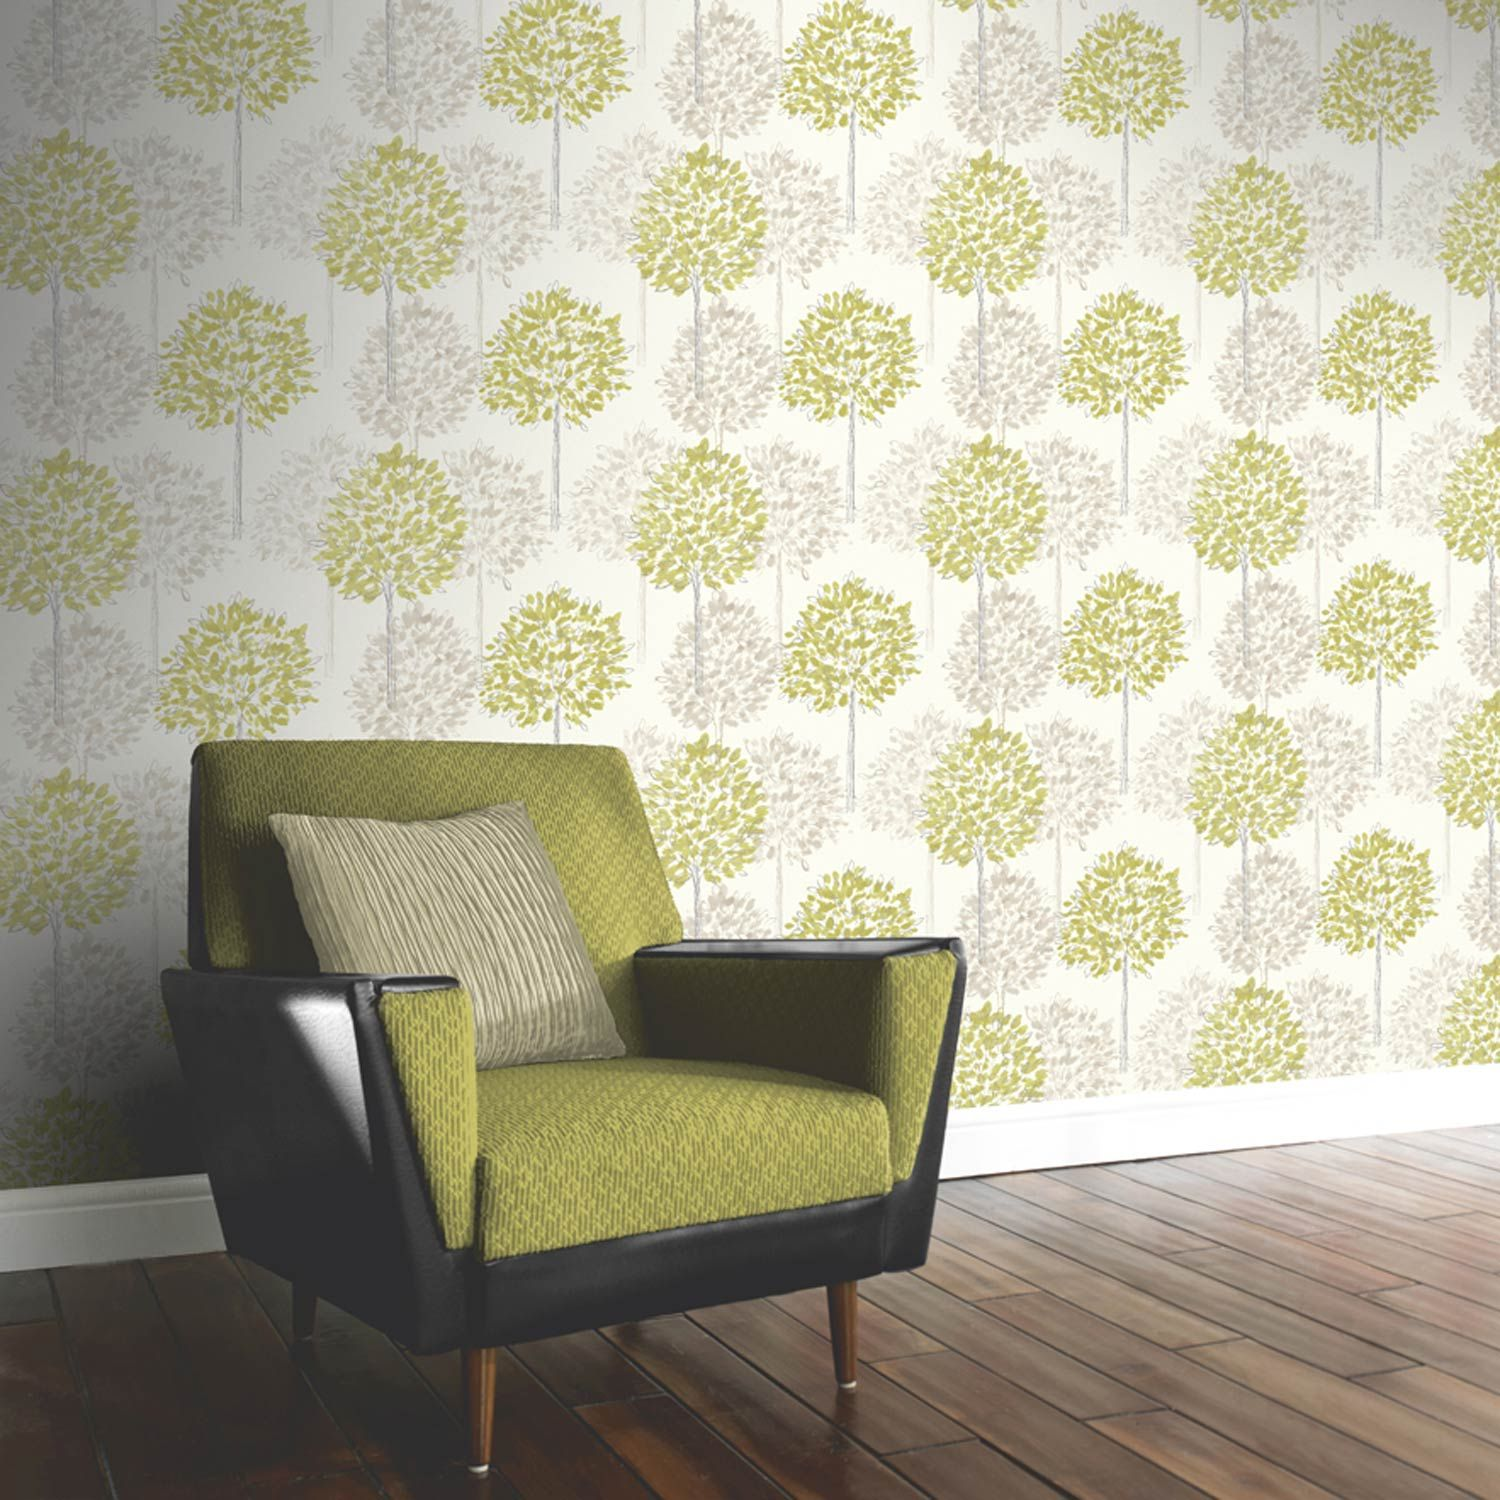 Buy the Boulevard Green Wallpaper by Arthouse at The Range | DIY ...